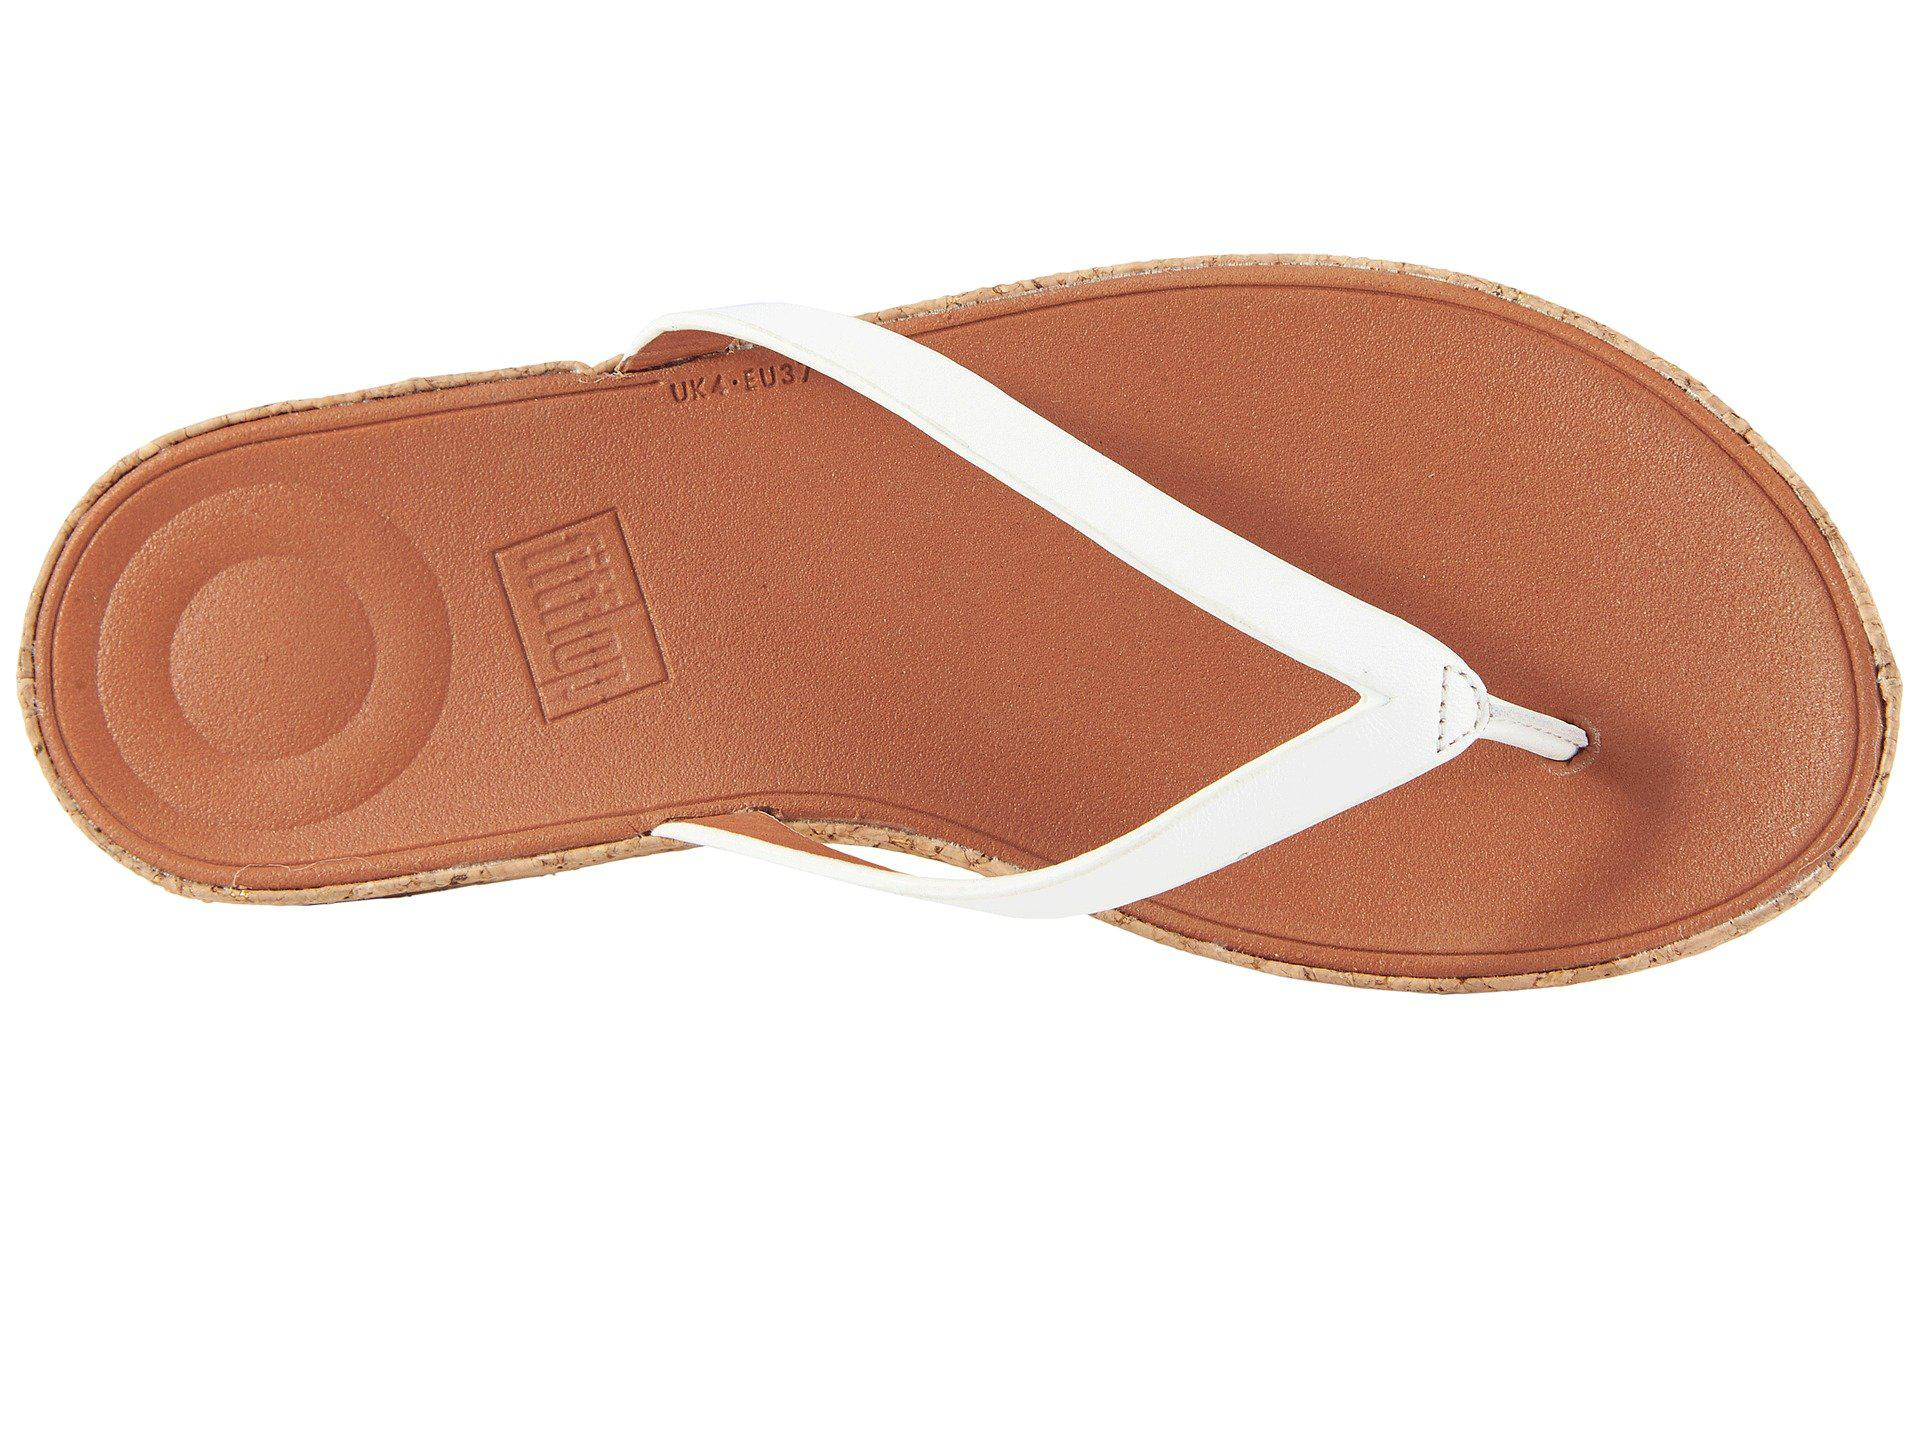 93cbe9644 Fitflop - Multicolor Linny Toe Thong Sandals - Lyst. View fullscreen